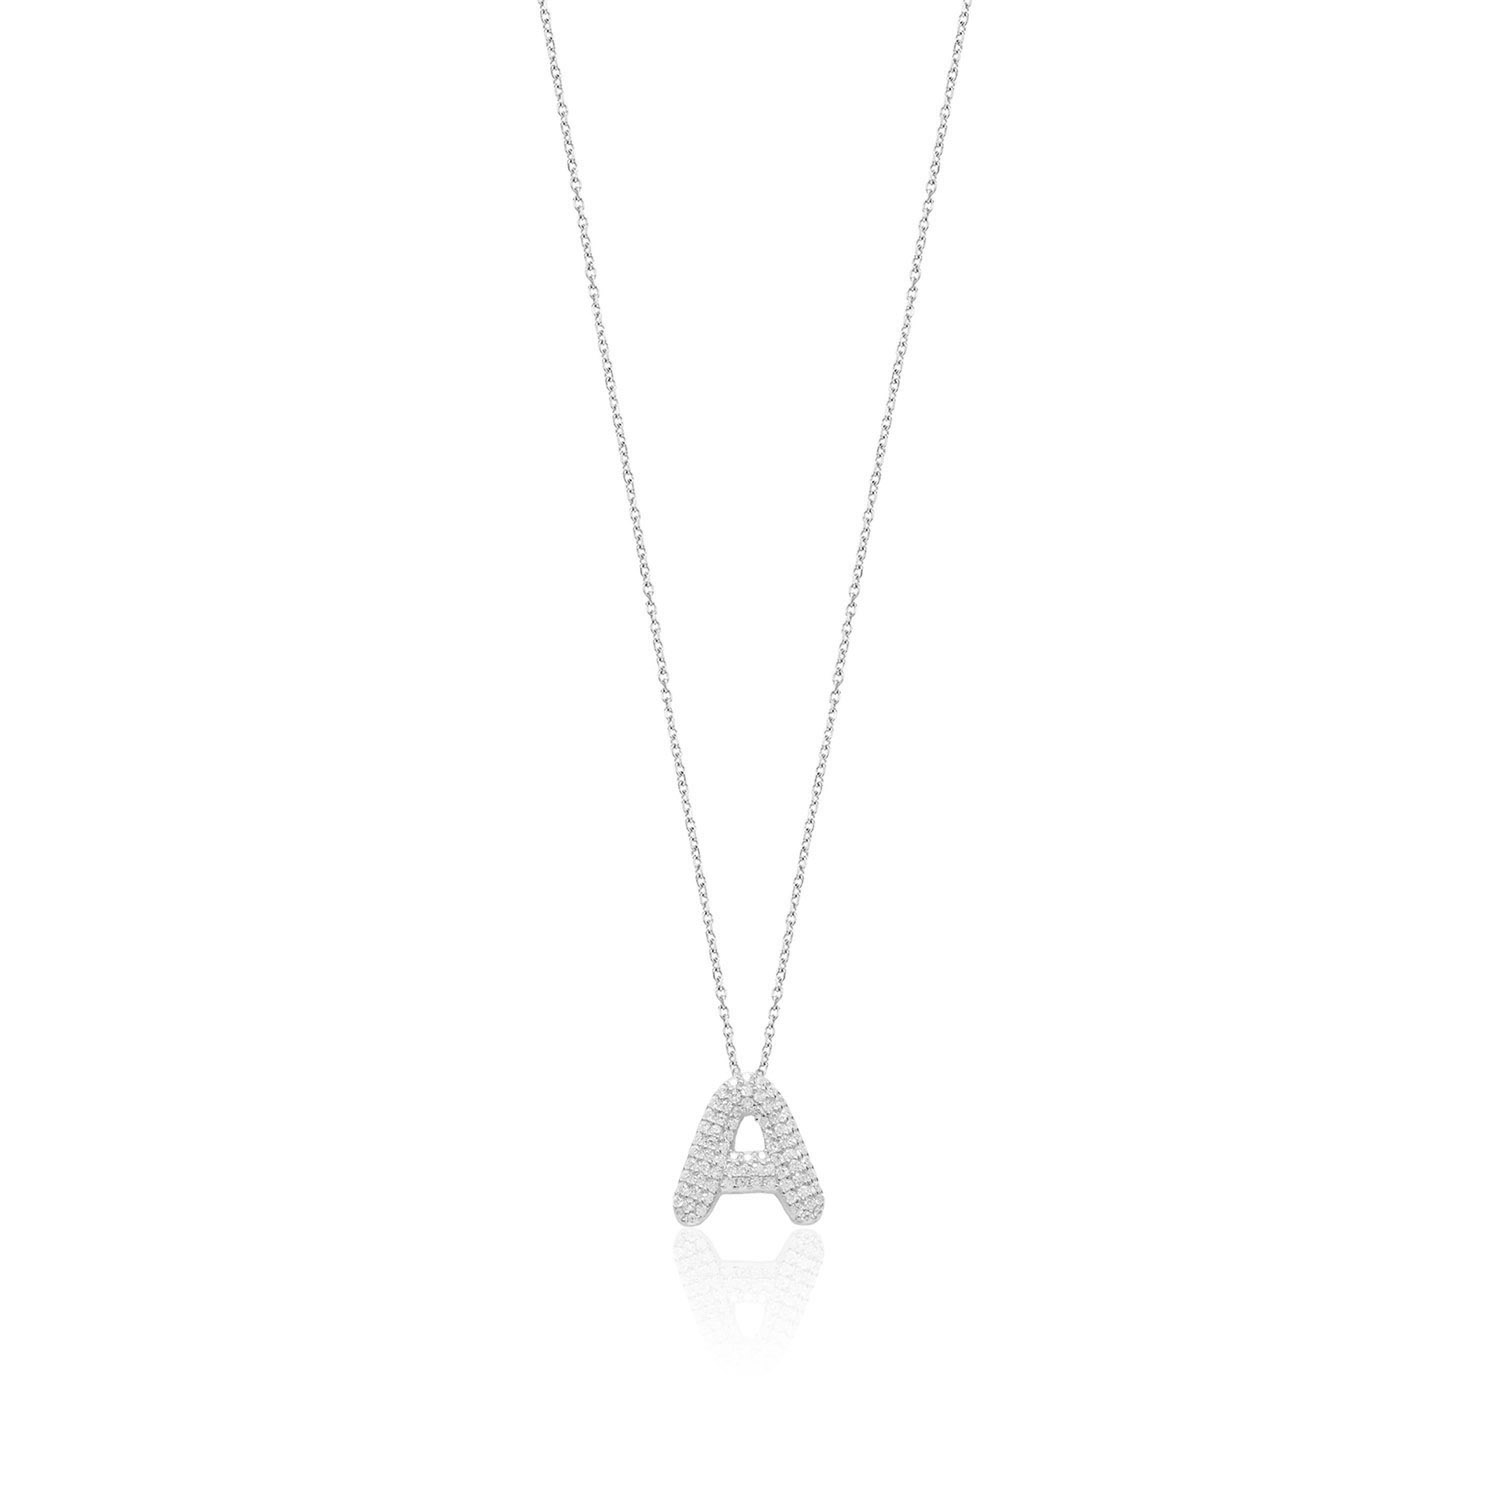 cosar-silver-925-sterling-silver-necklace